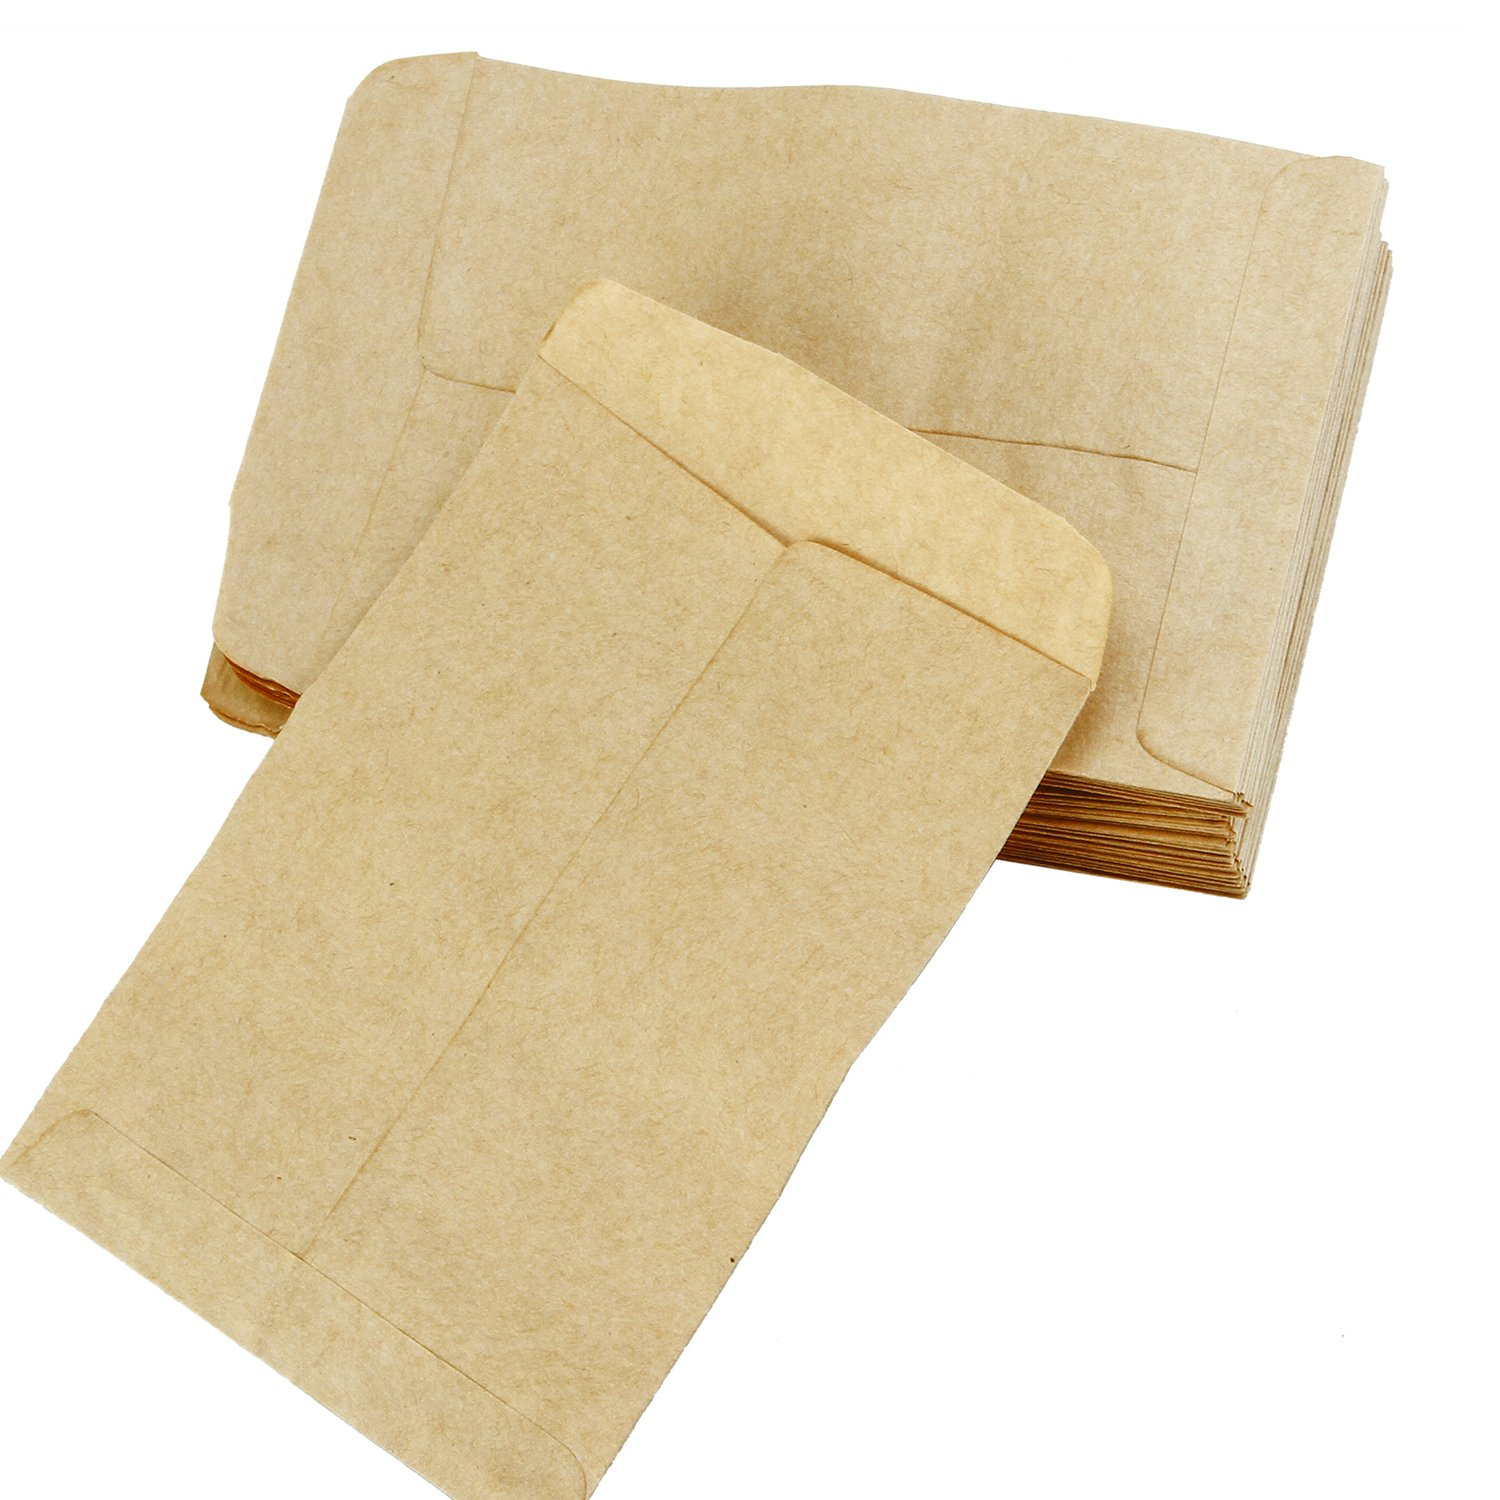 Aneco 200 Pieces Seed Envelopes Kraft Seed Paper Bags Mini Coin Packets Envelopes for Home and Garden Use 2 Size